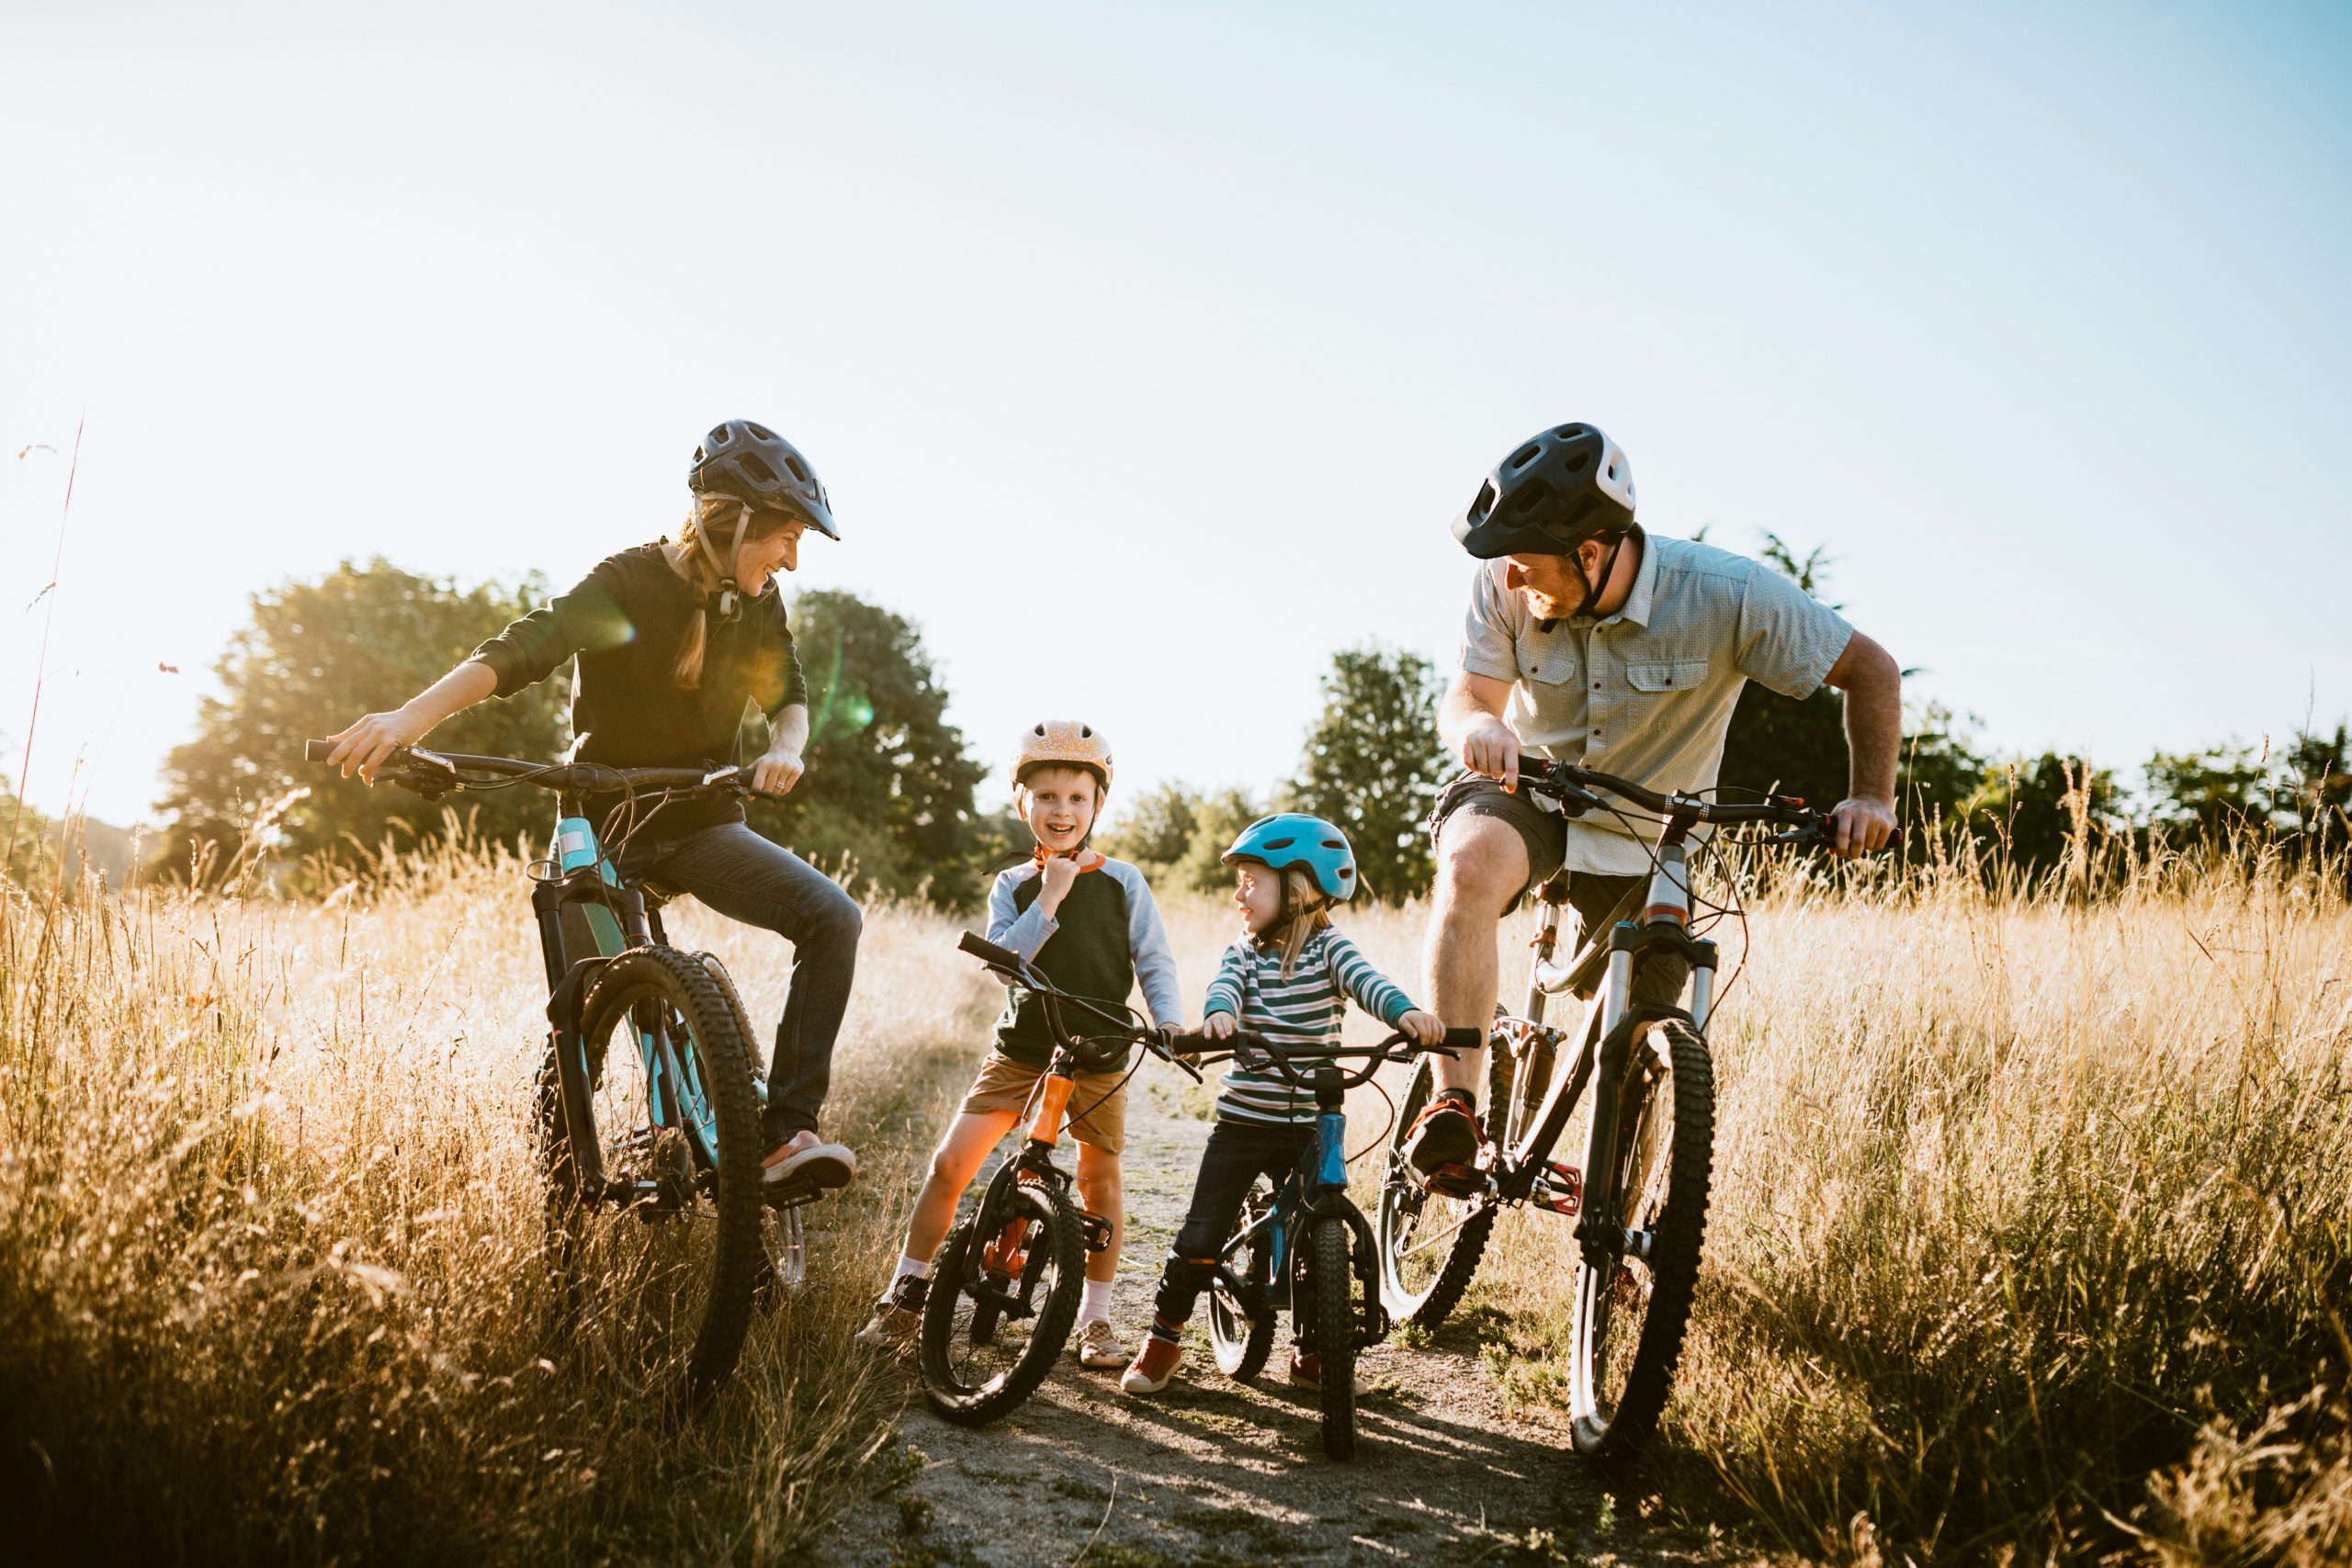 A family - mum, dad, and two kids mountain bike riding together on sunny day